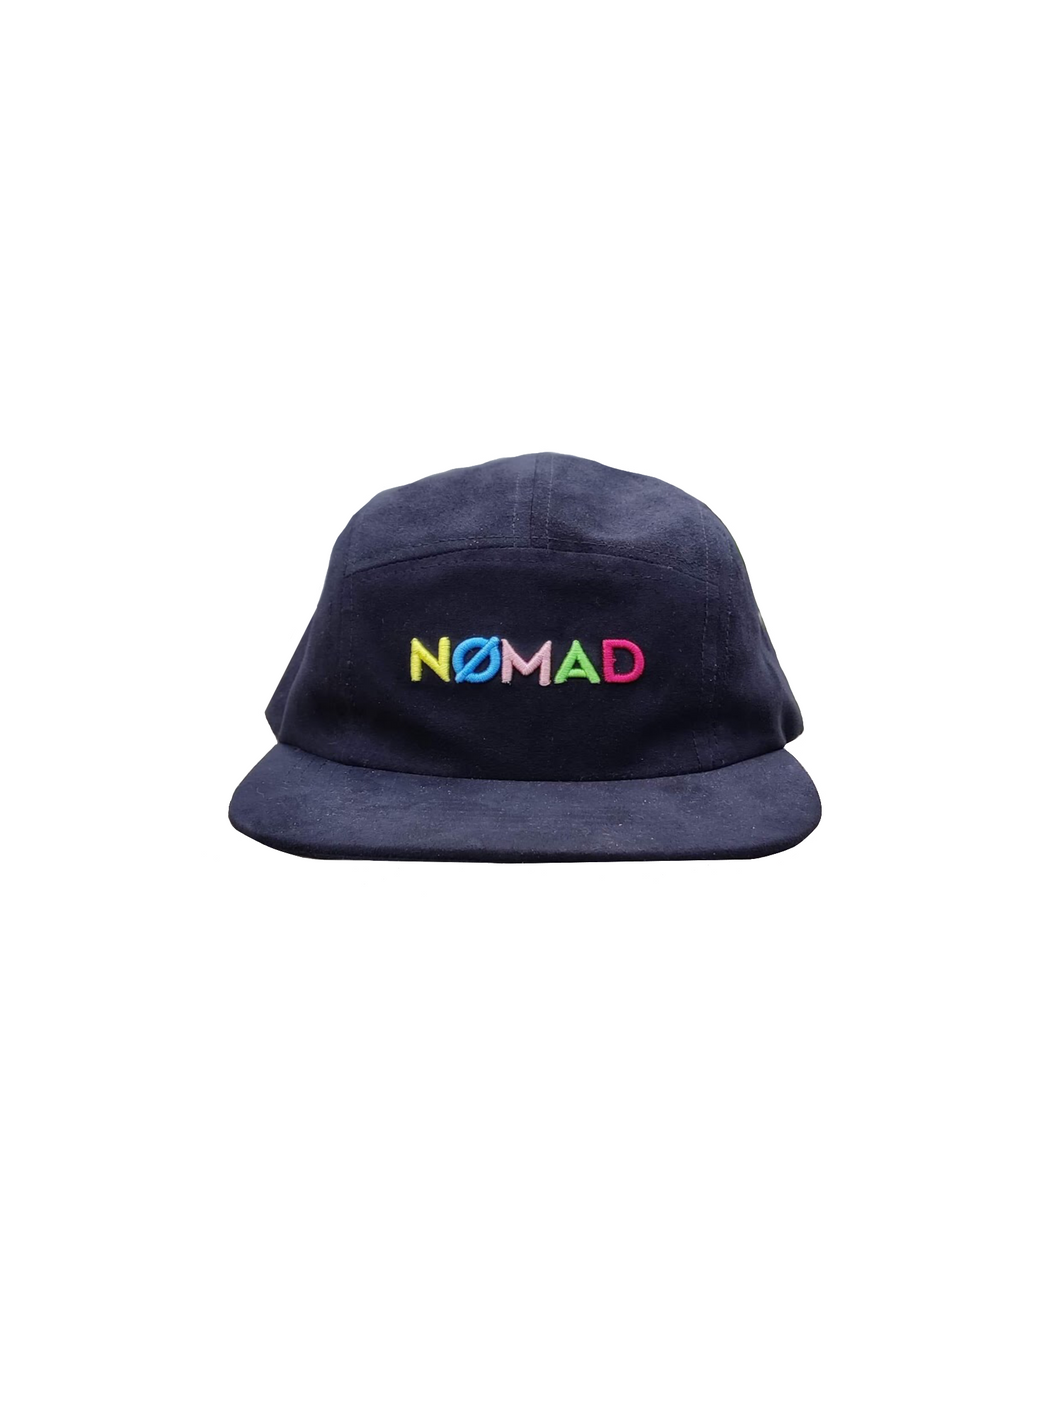 Nomad Classic Five Panel - Black